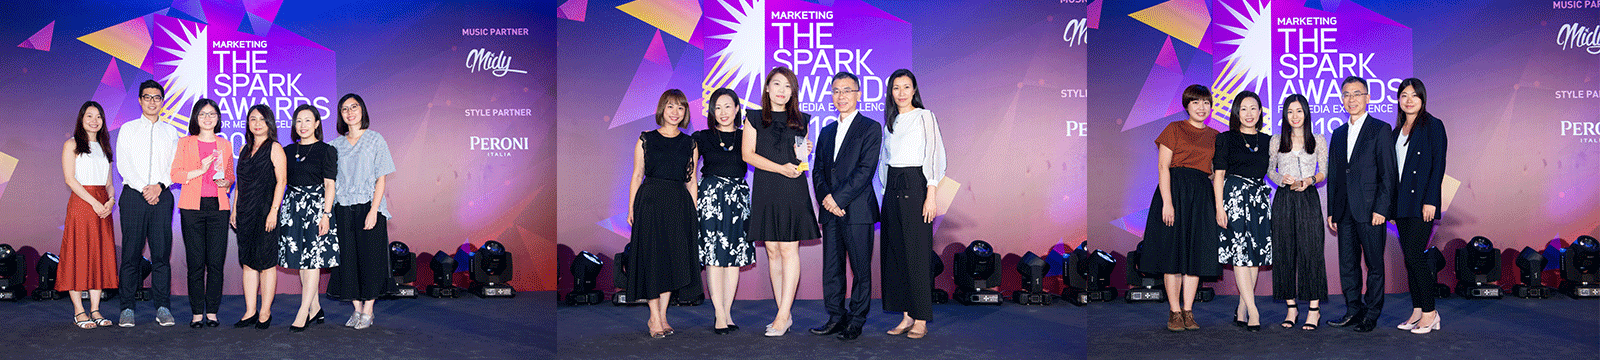 Spark Awards for Media Excellence 2019